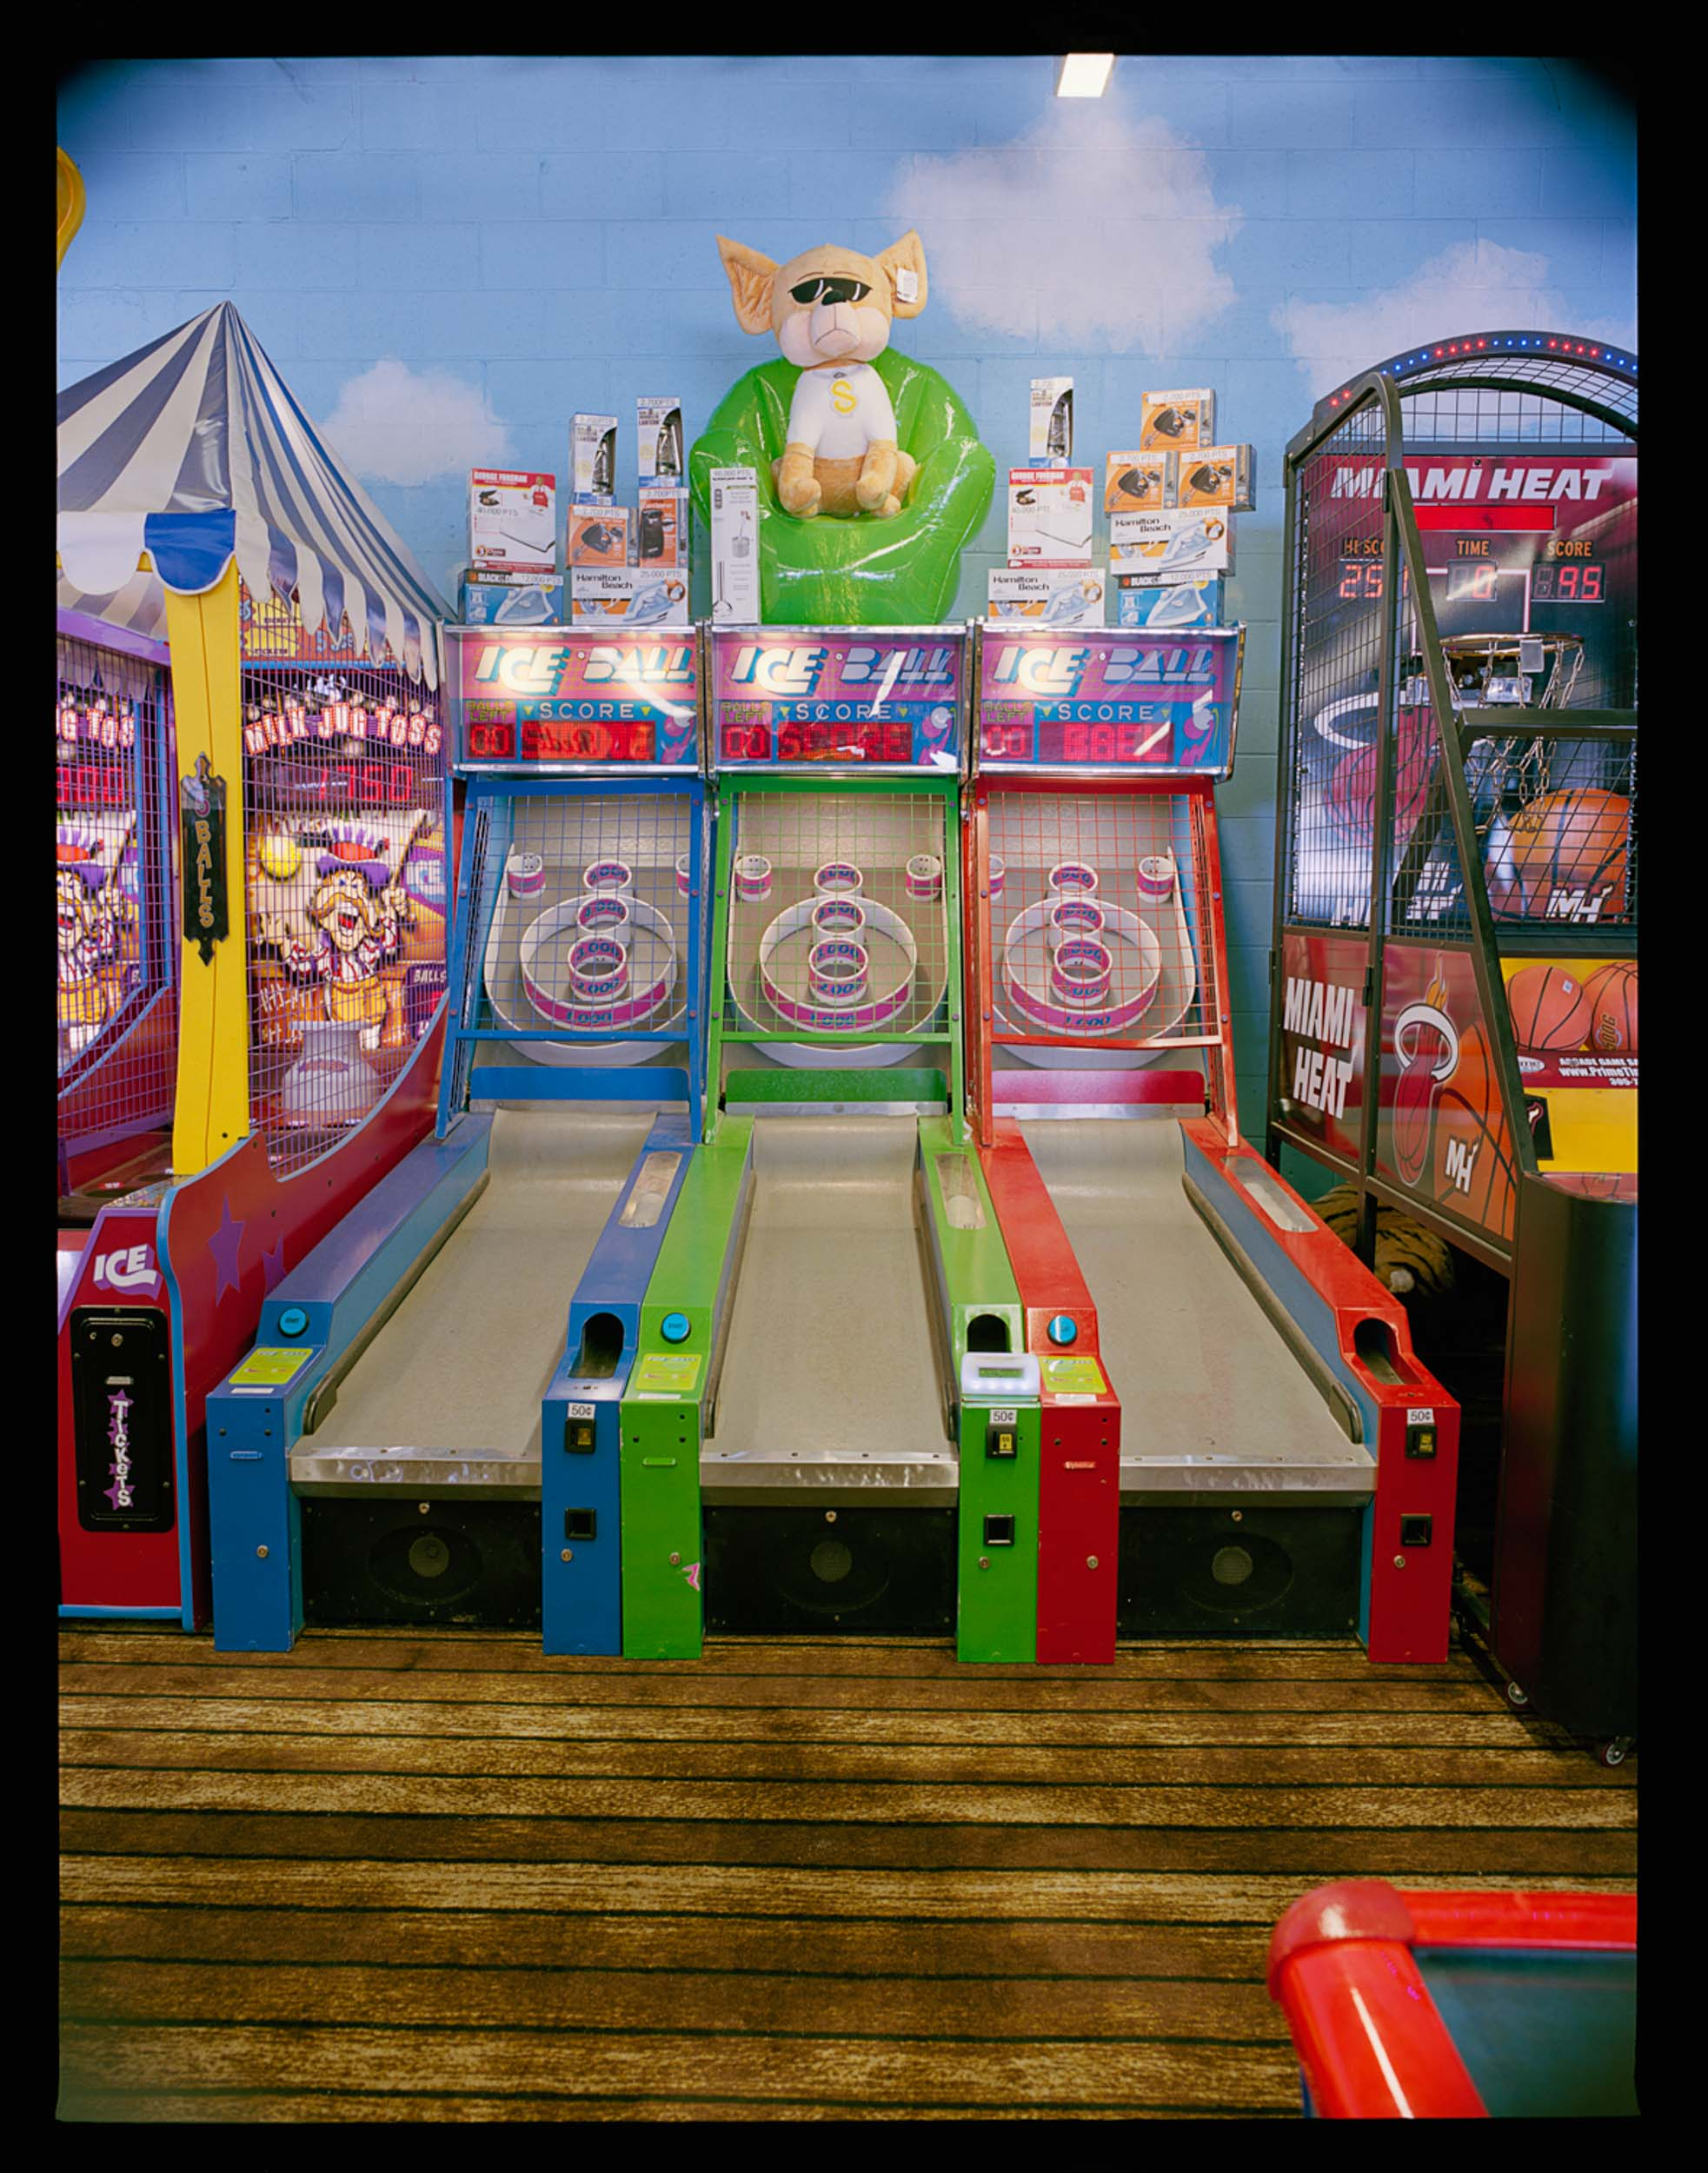 Shake Shoppe Arcade #2, Seaside, NJ. 2014. Mamiya RZ67.